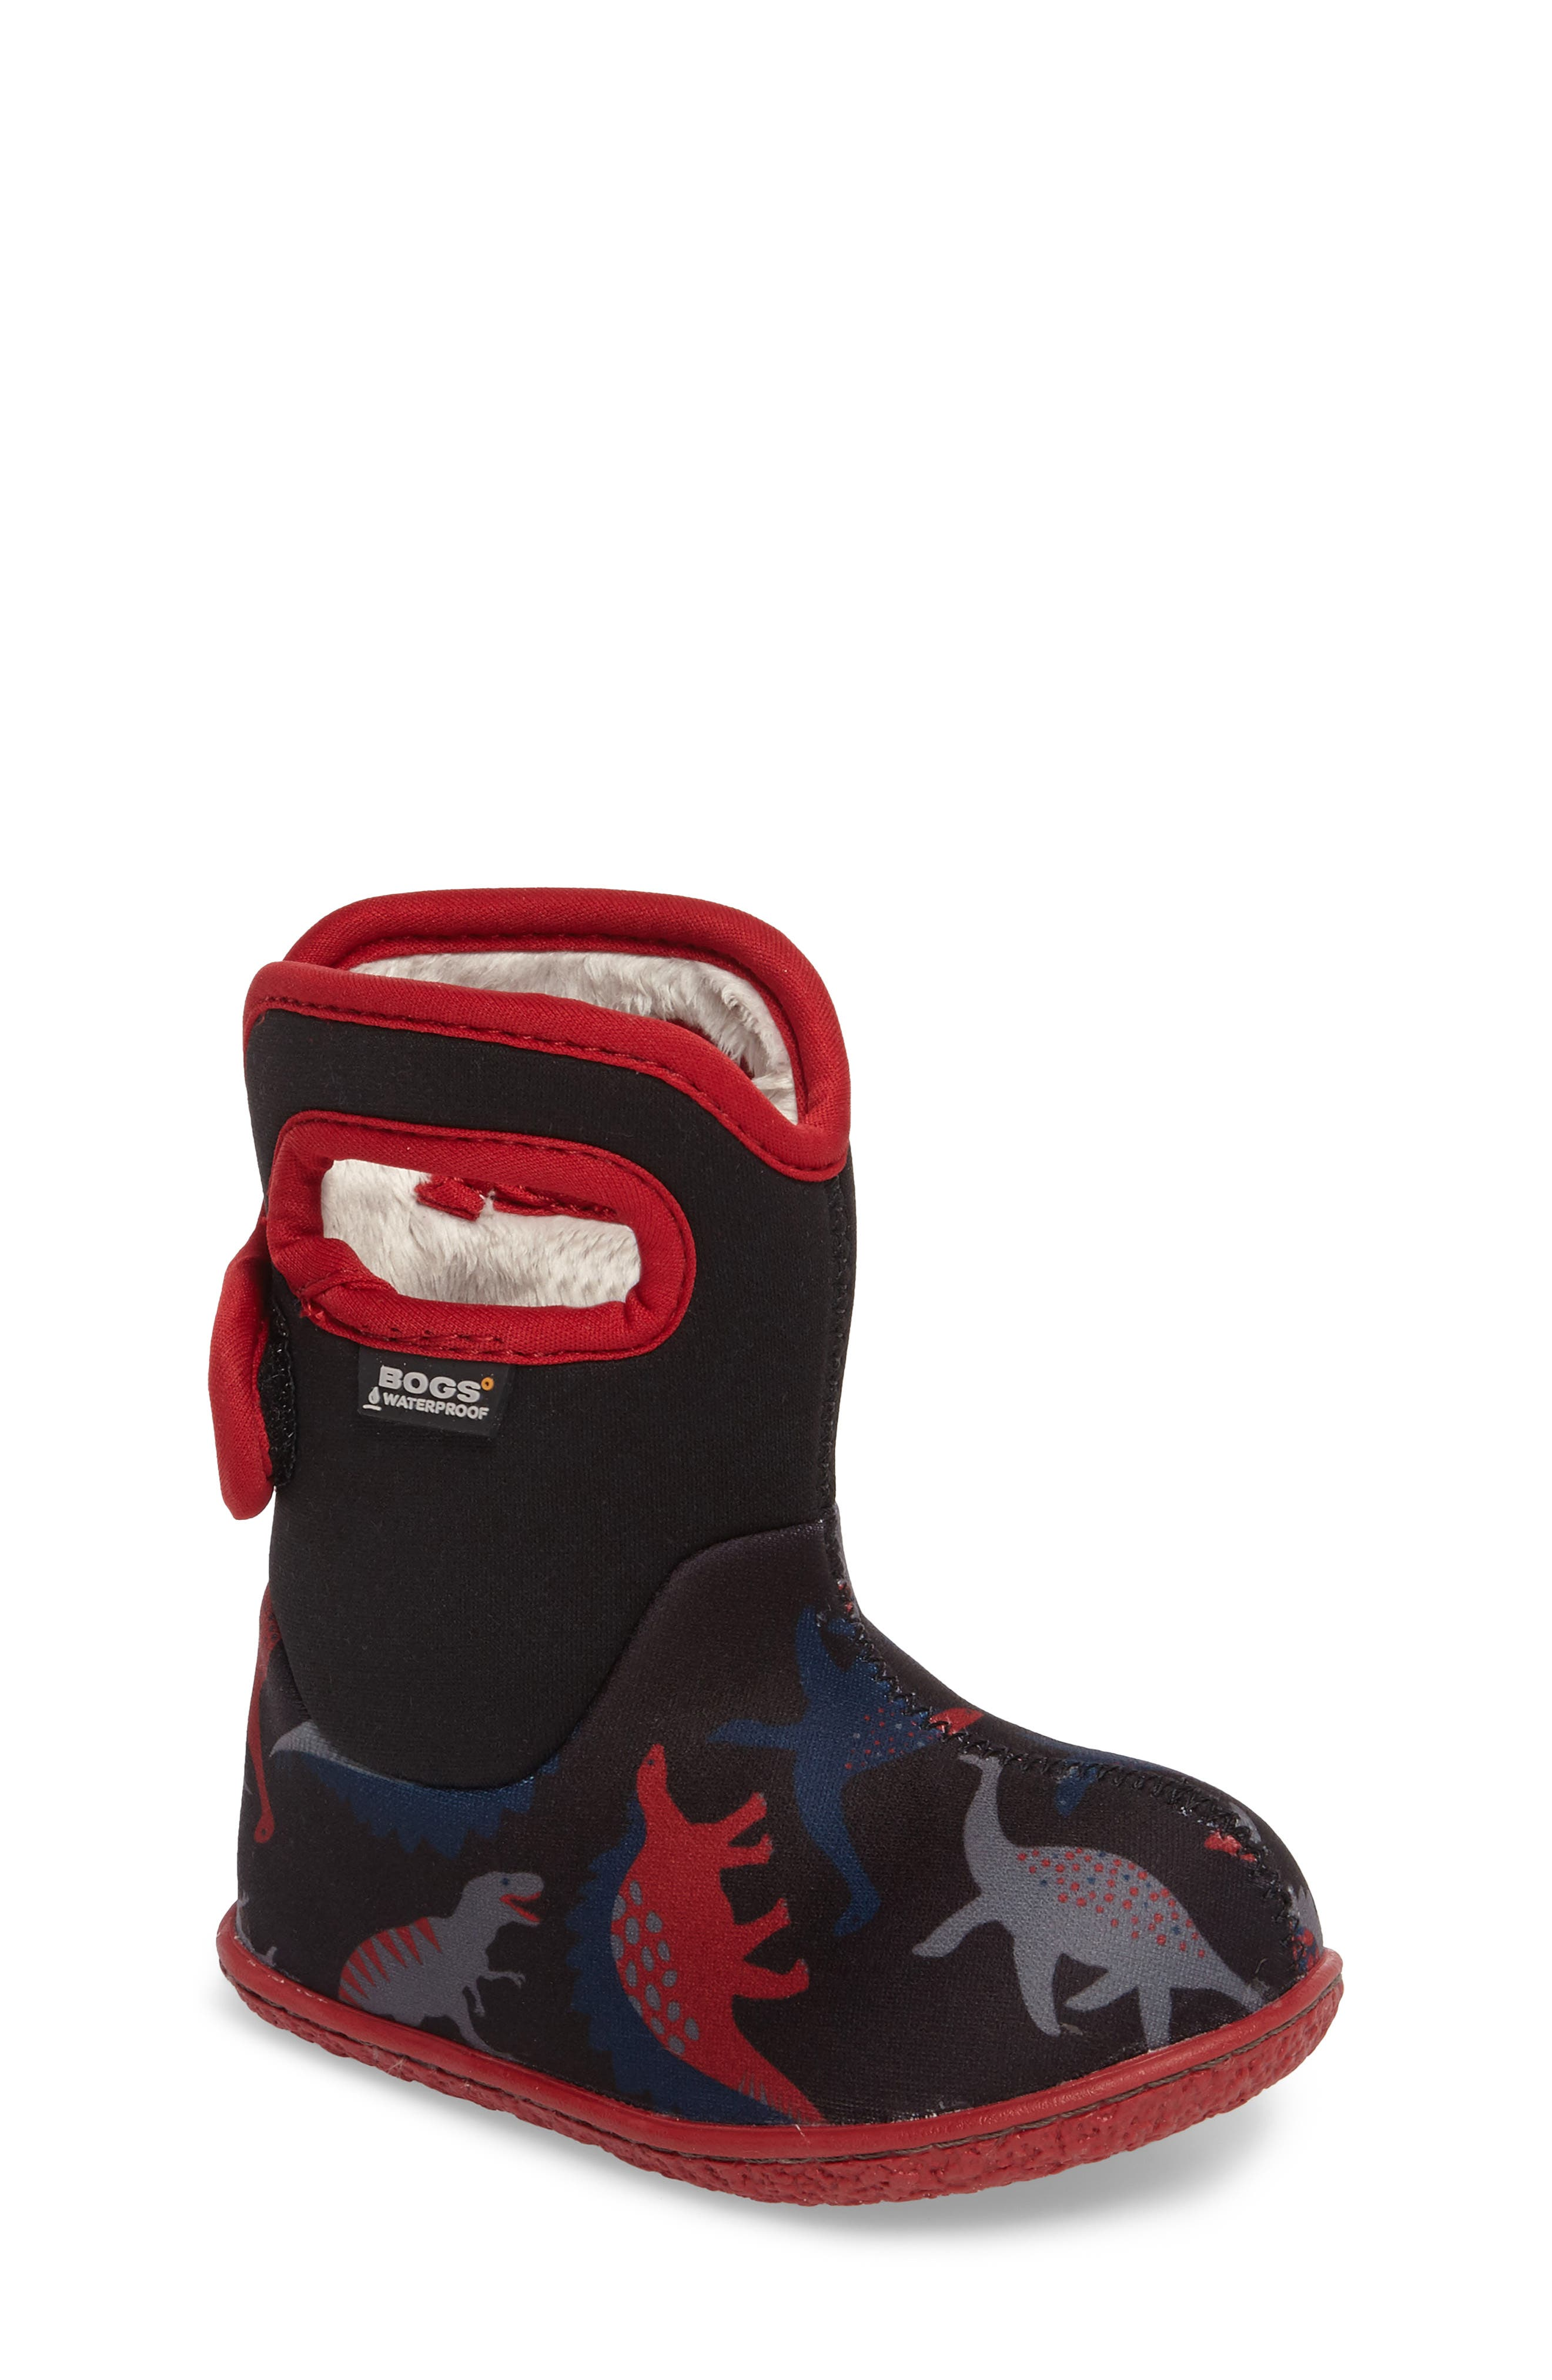 Baby Bog Classic Dino Insulated Waterproof Boot,                             Main thumbnail 1, color,                             Black/ Red Multi